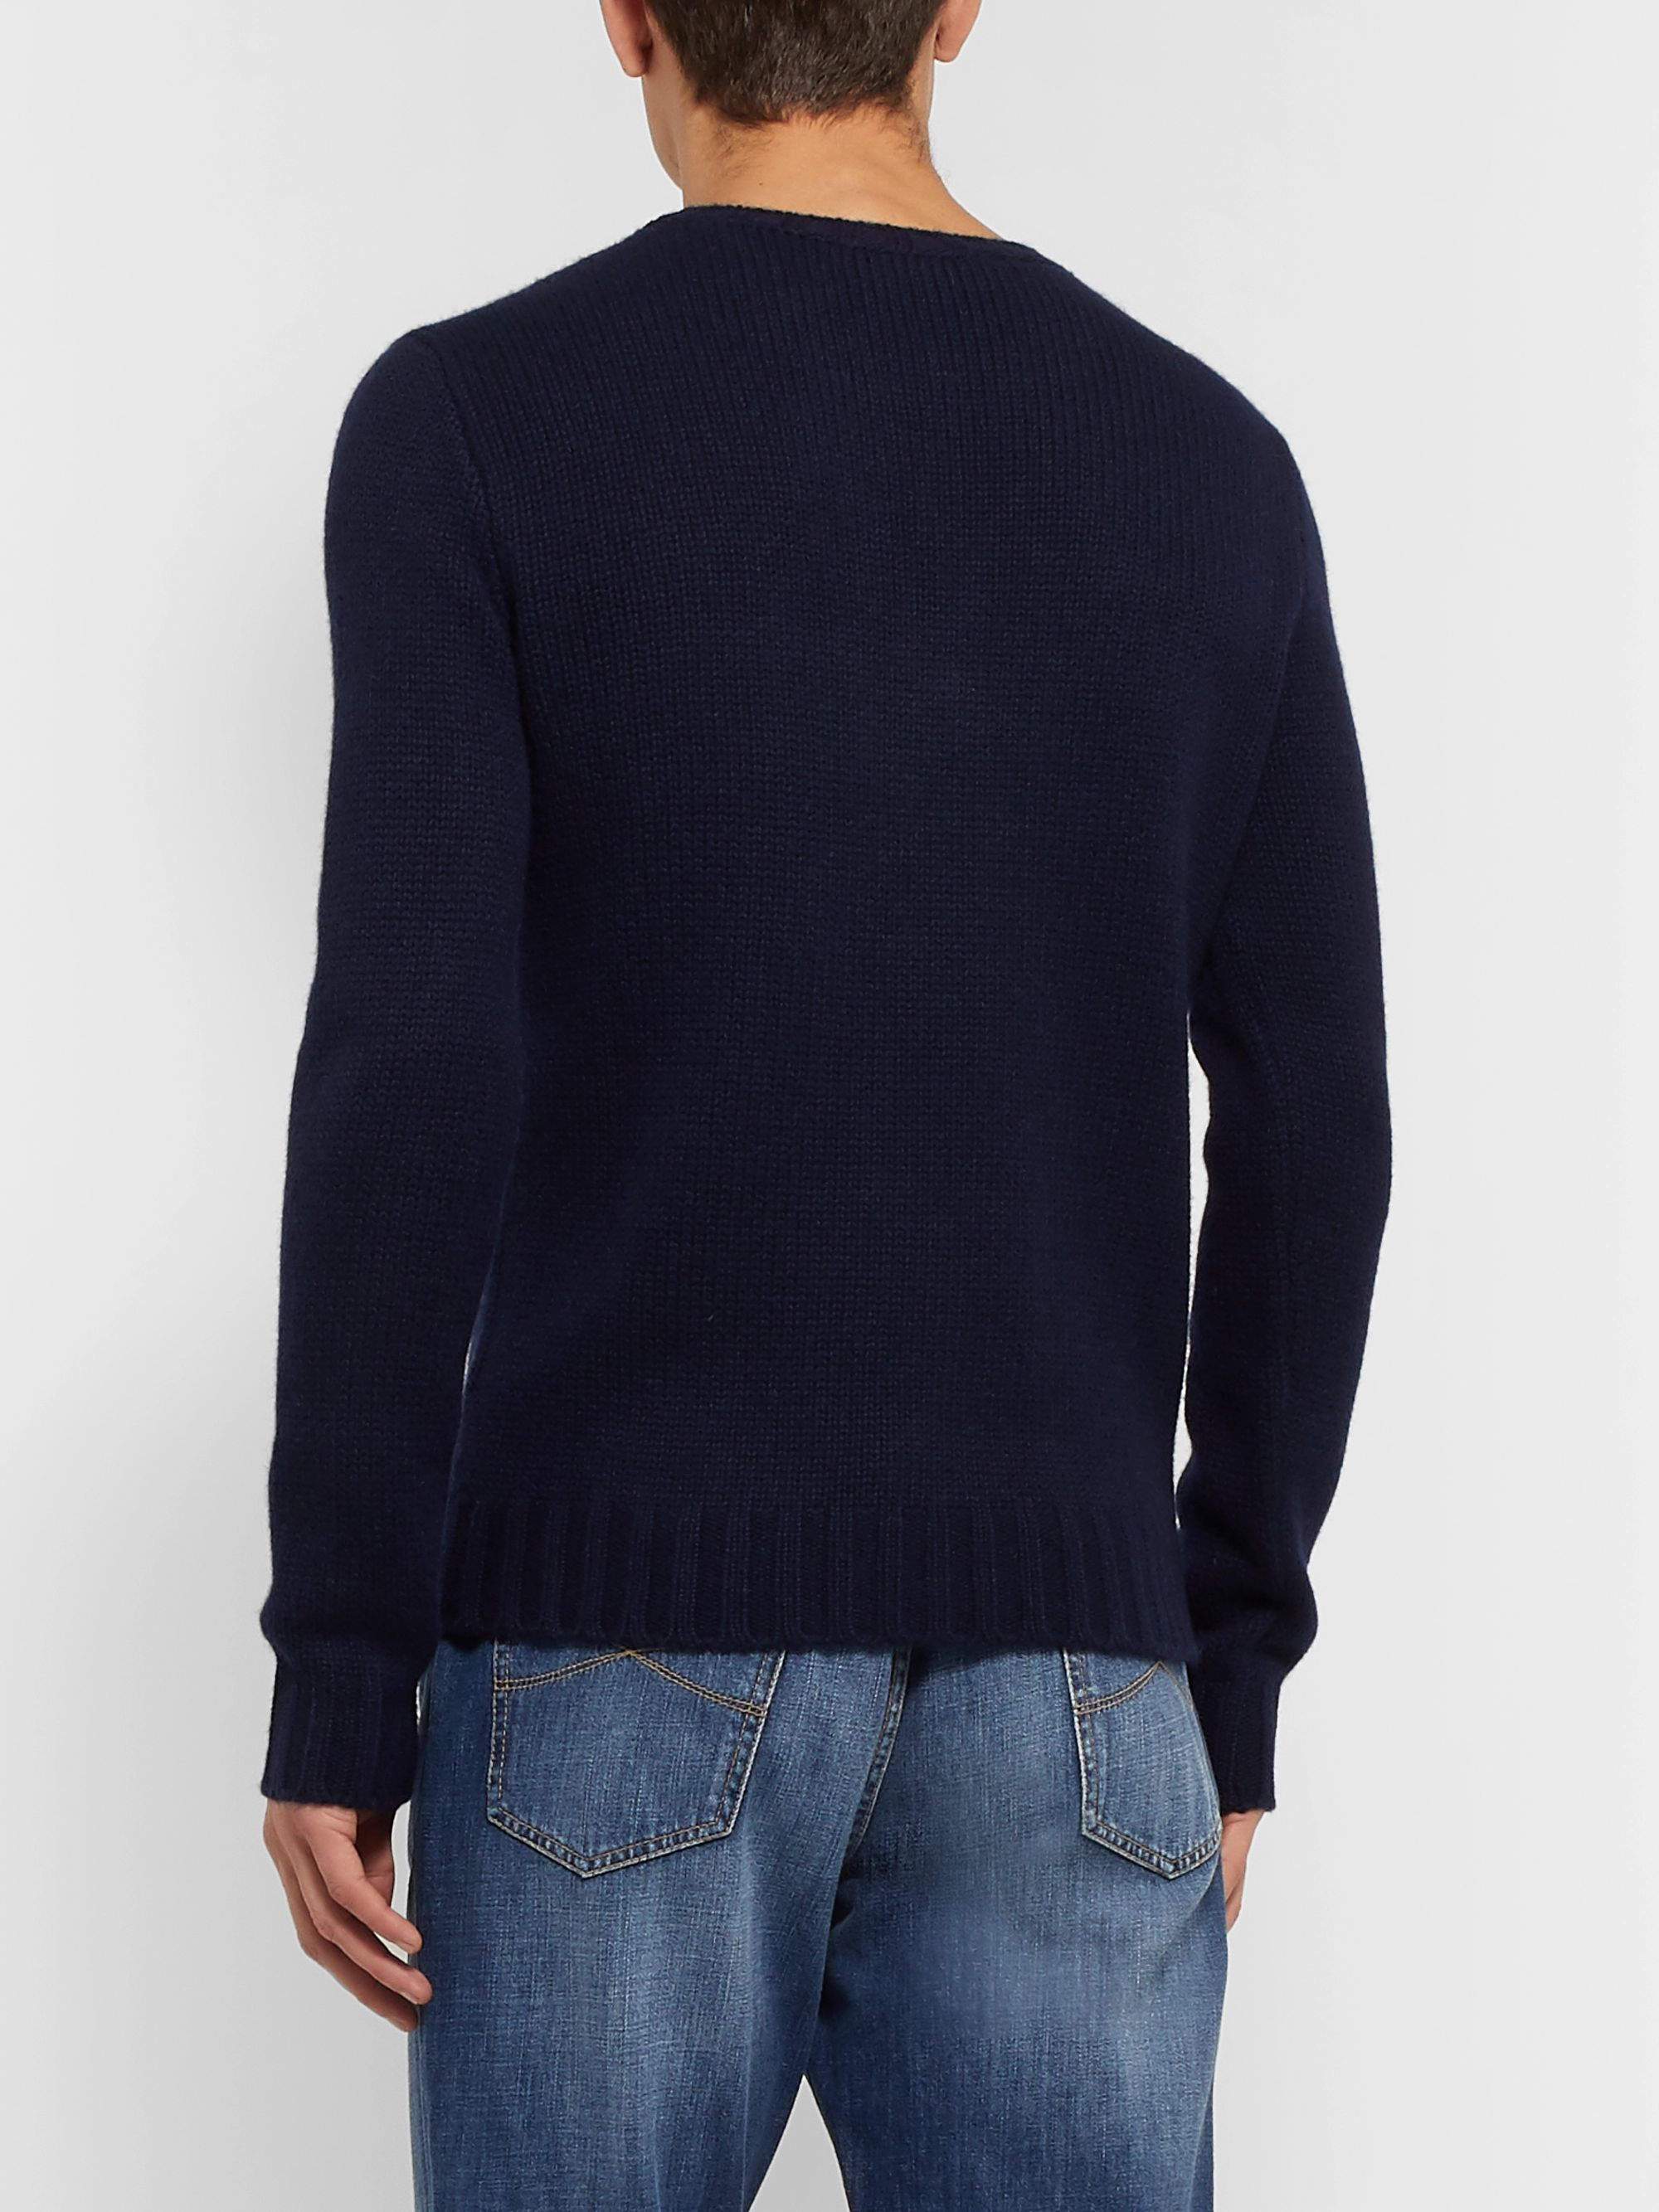 Ralph Lauren Purple Label Slim-Fit Intarsia Cashmere Sweater